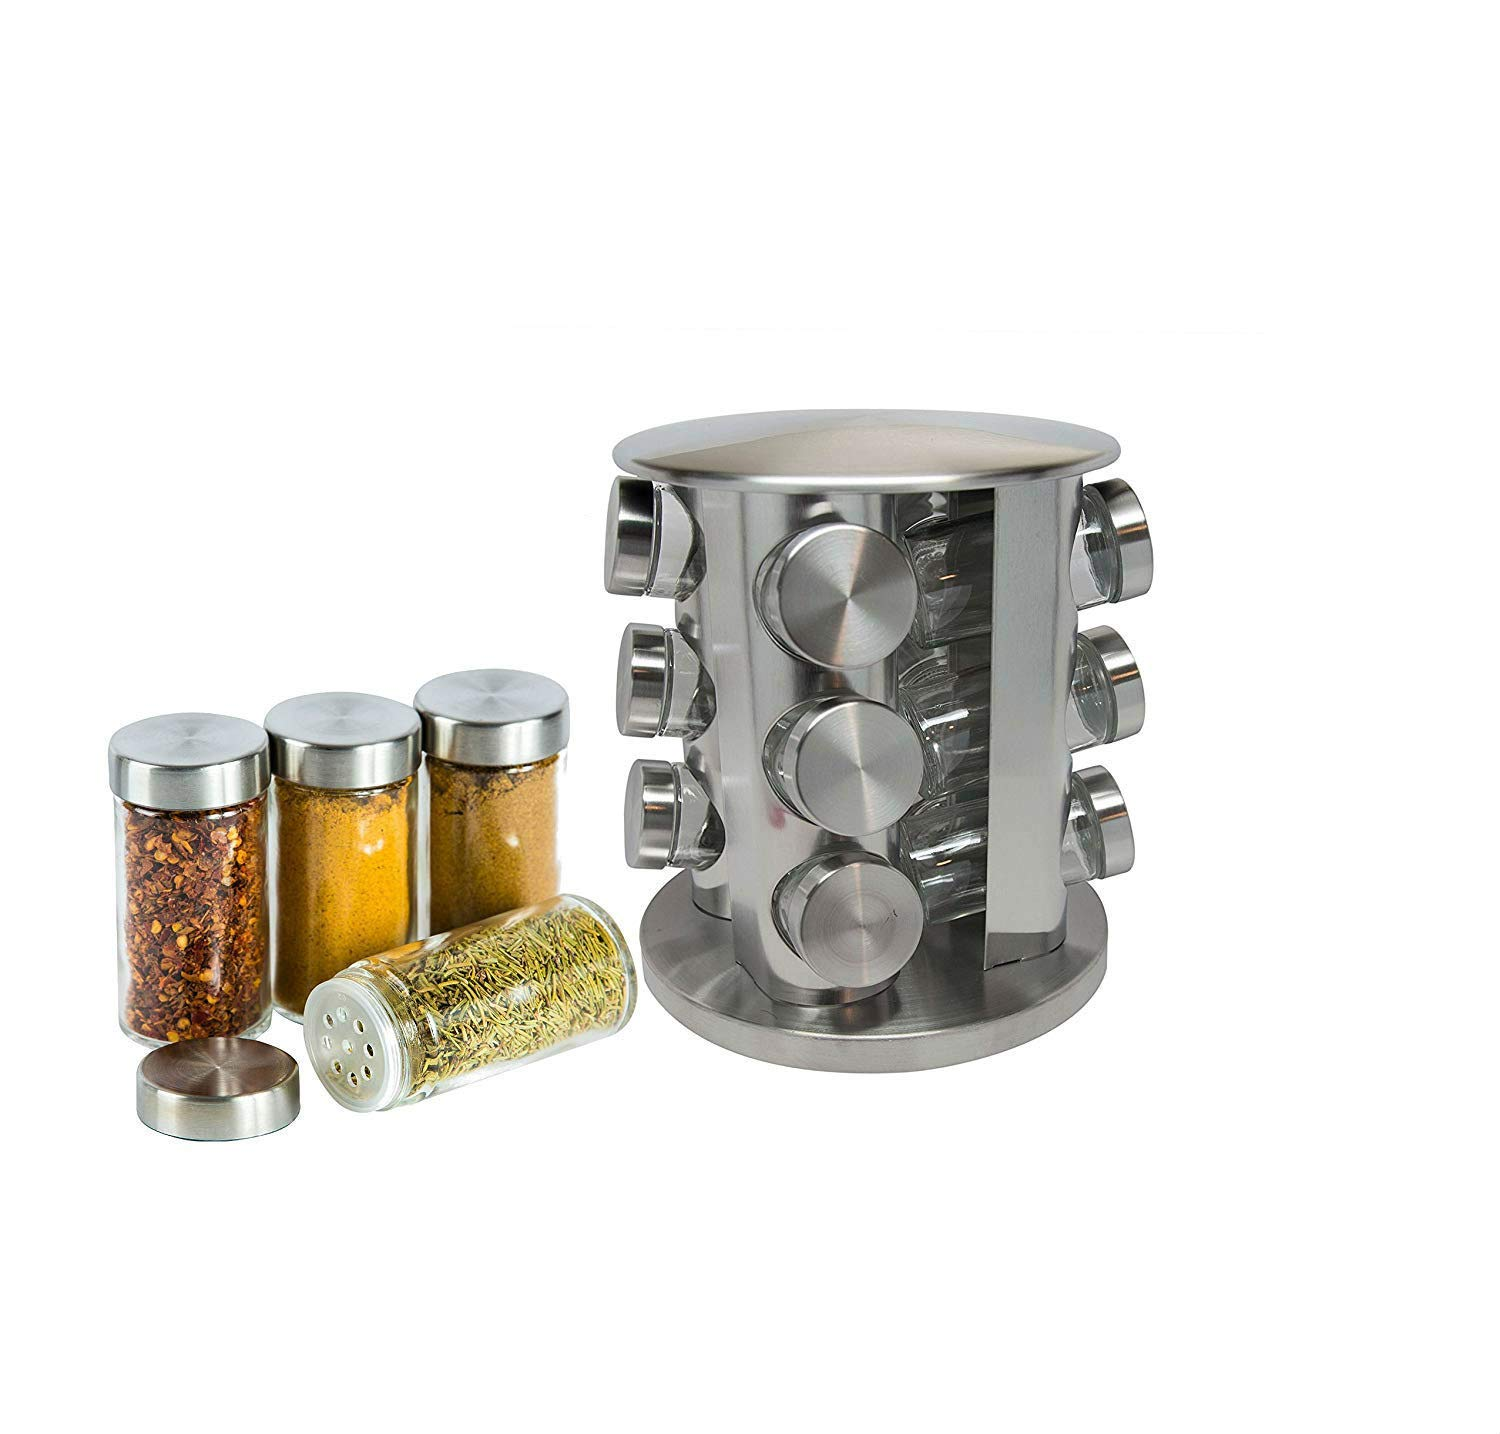 Xena 12 Piece Stainless Steel Rotating Spice Rack for Kitchen Storage, Home Organization, Spice Containers and Storage